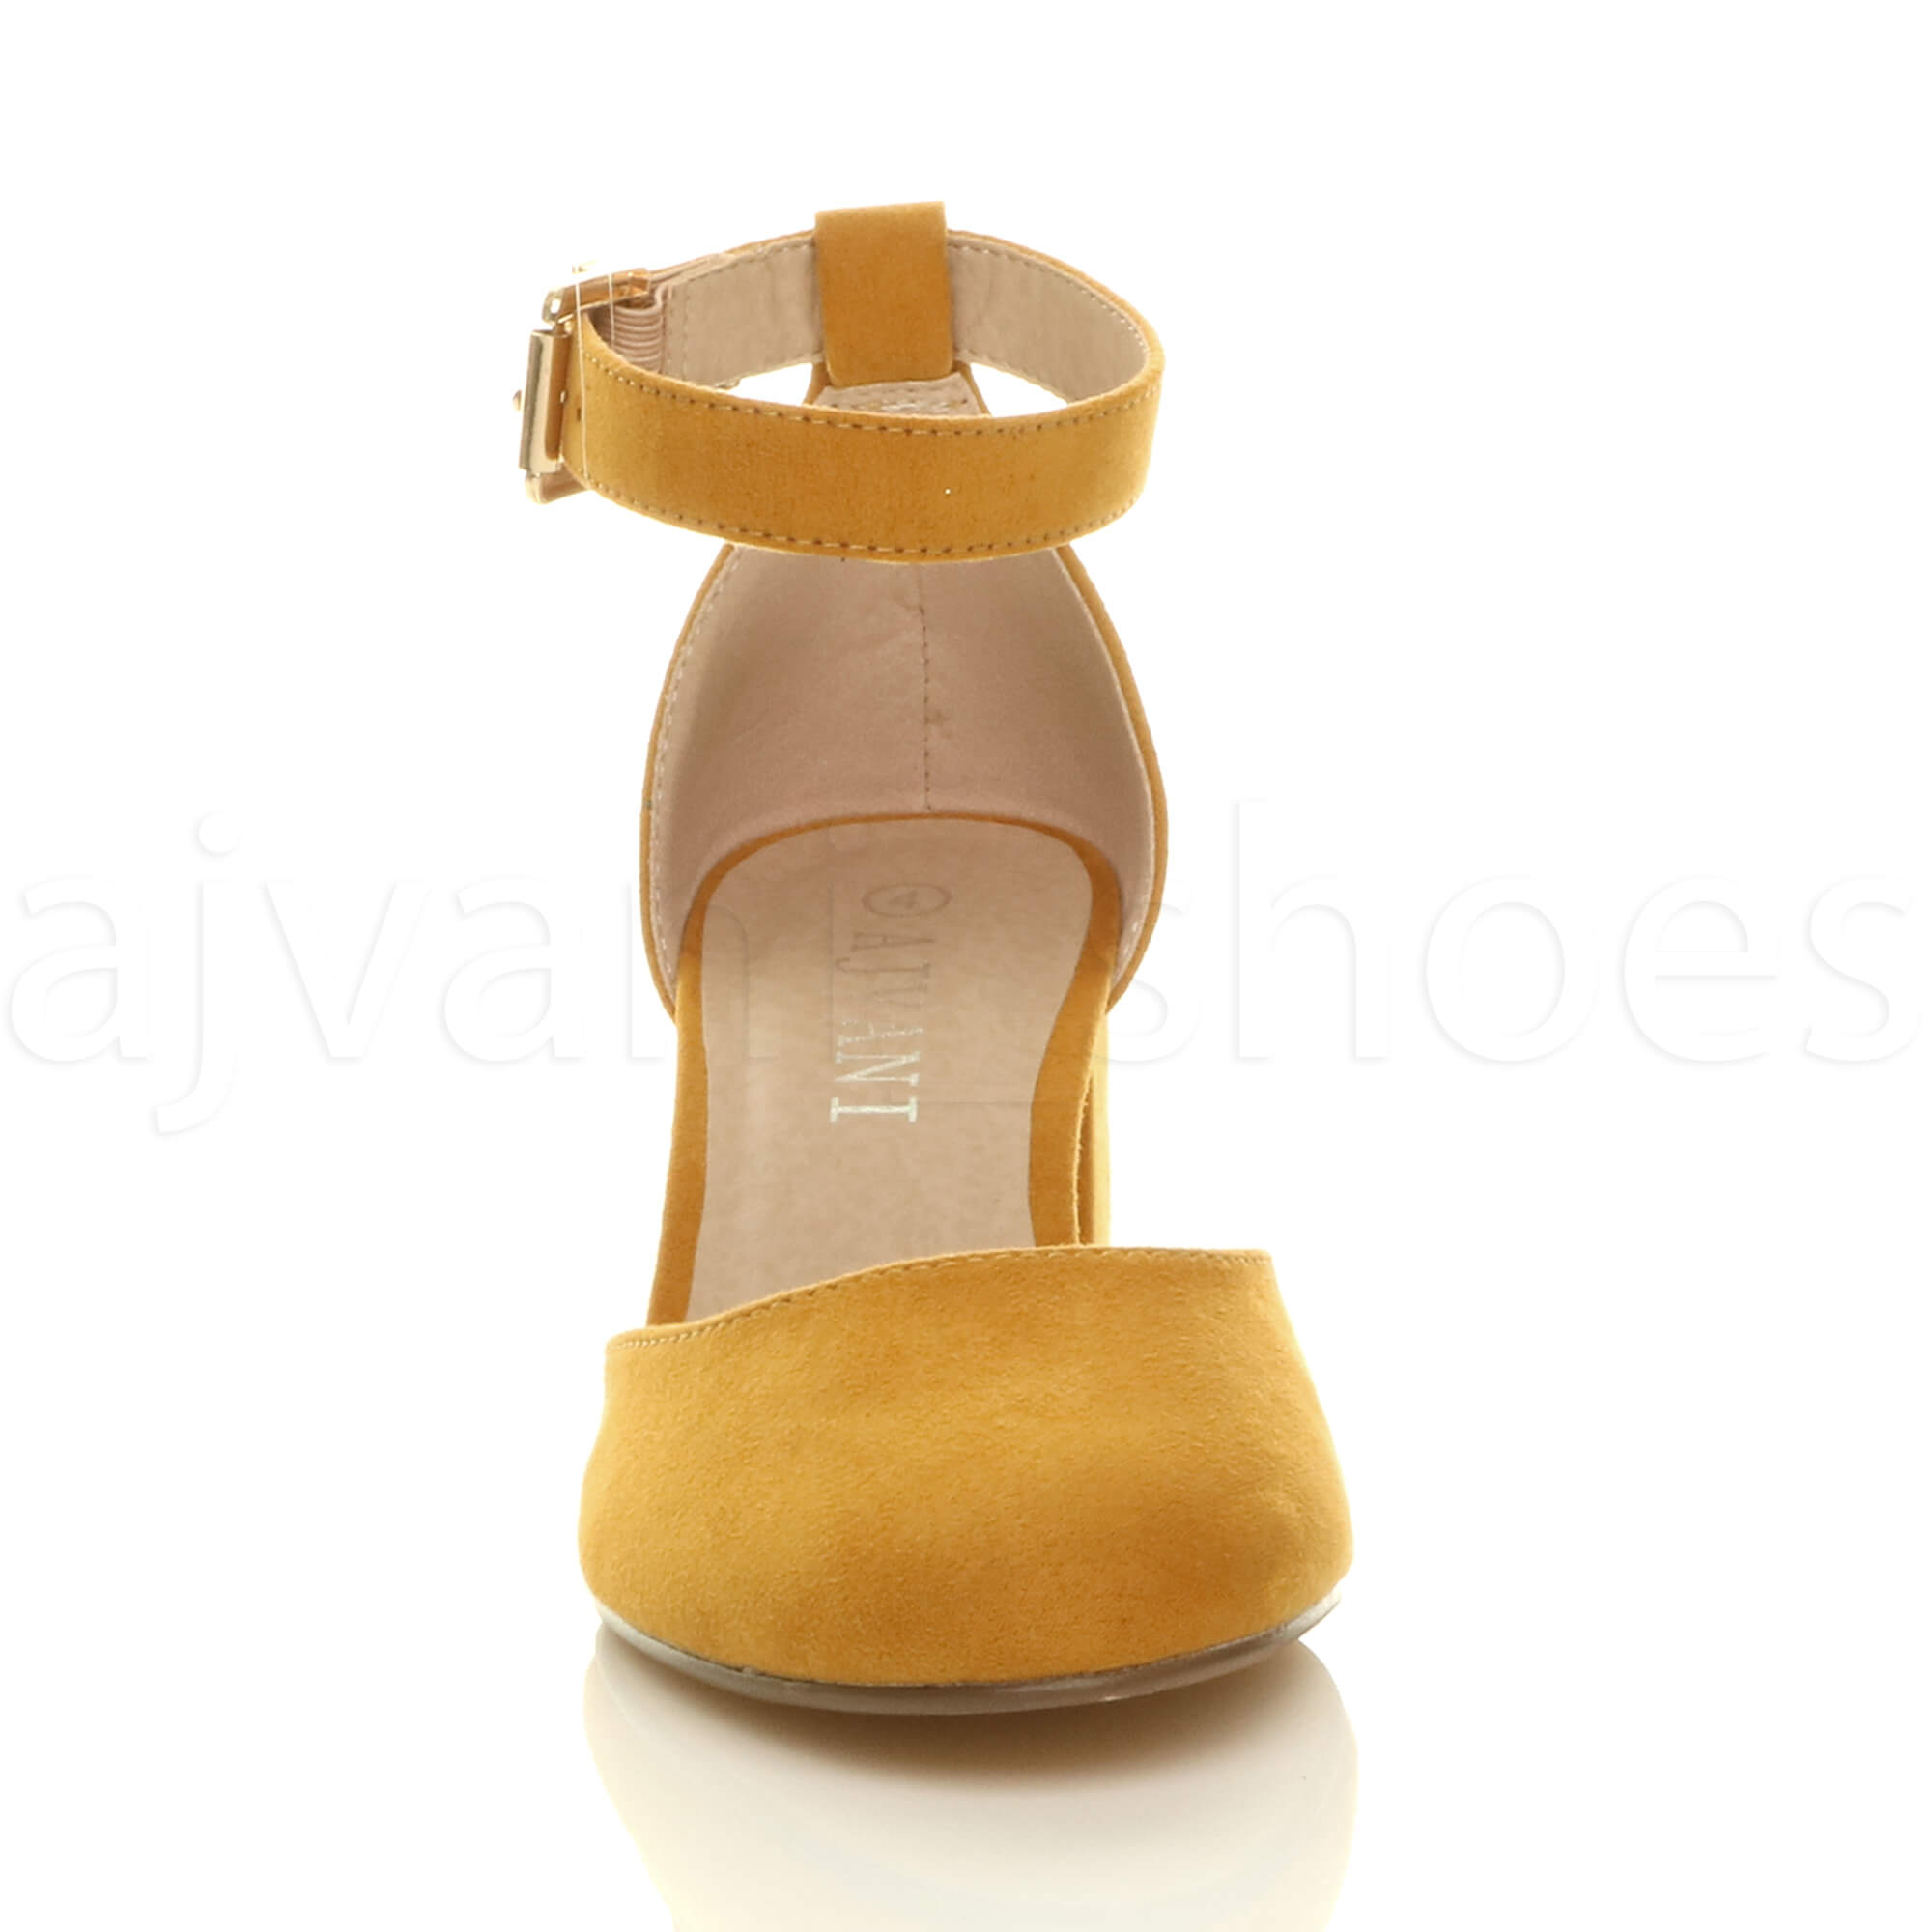 WOMENS-LADIES-LOW-MID-BLOCK-HEEL-ANKLE-STRAP-MARY-JANE-COURT-SHOES-SANDALS-SIZE thumbnail 87